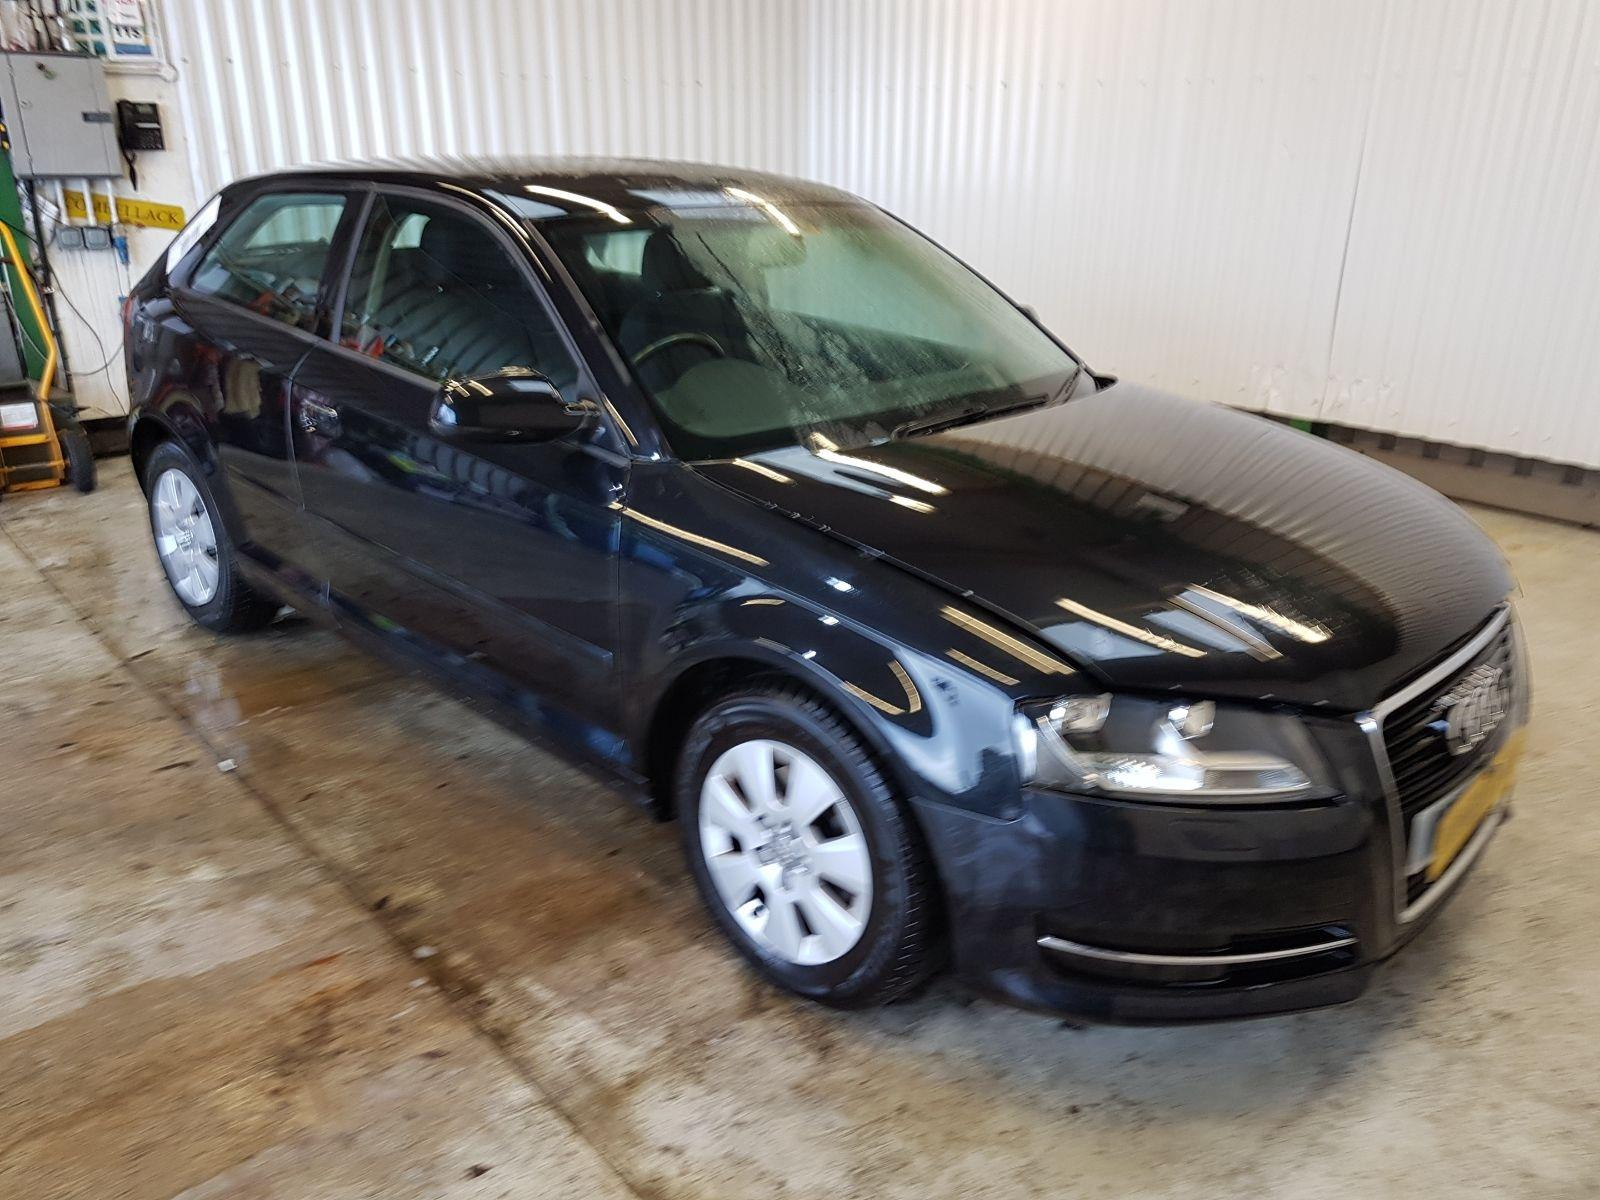 Audi A3 2008 To 2013 TDIe 3 Door Hatchback